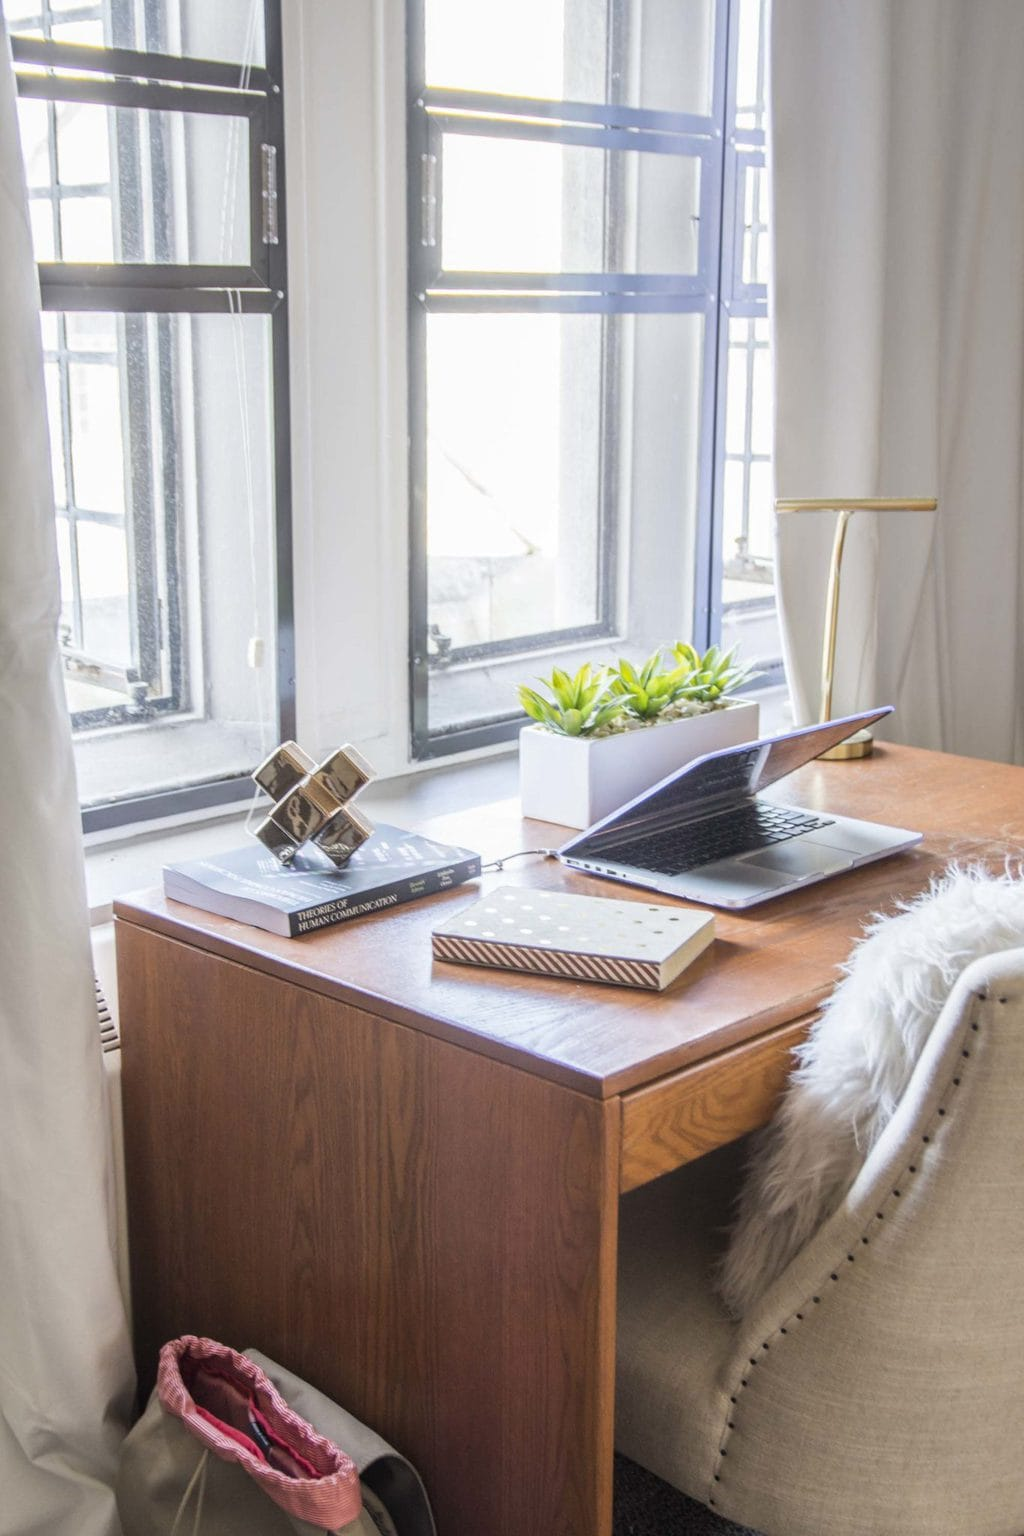 Dorm room desk with velvet curtains and upholstered desk chair on Thou Swell @thouswellblog